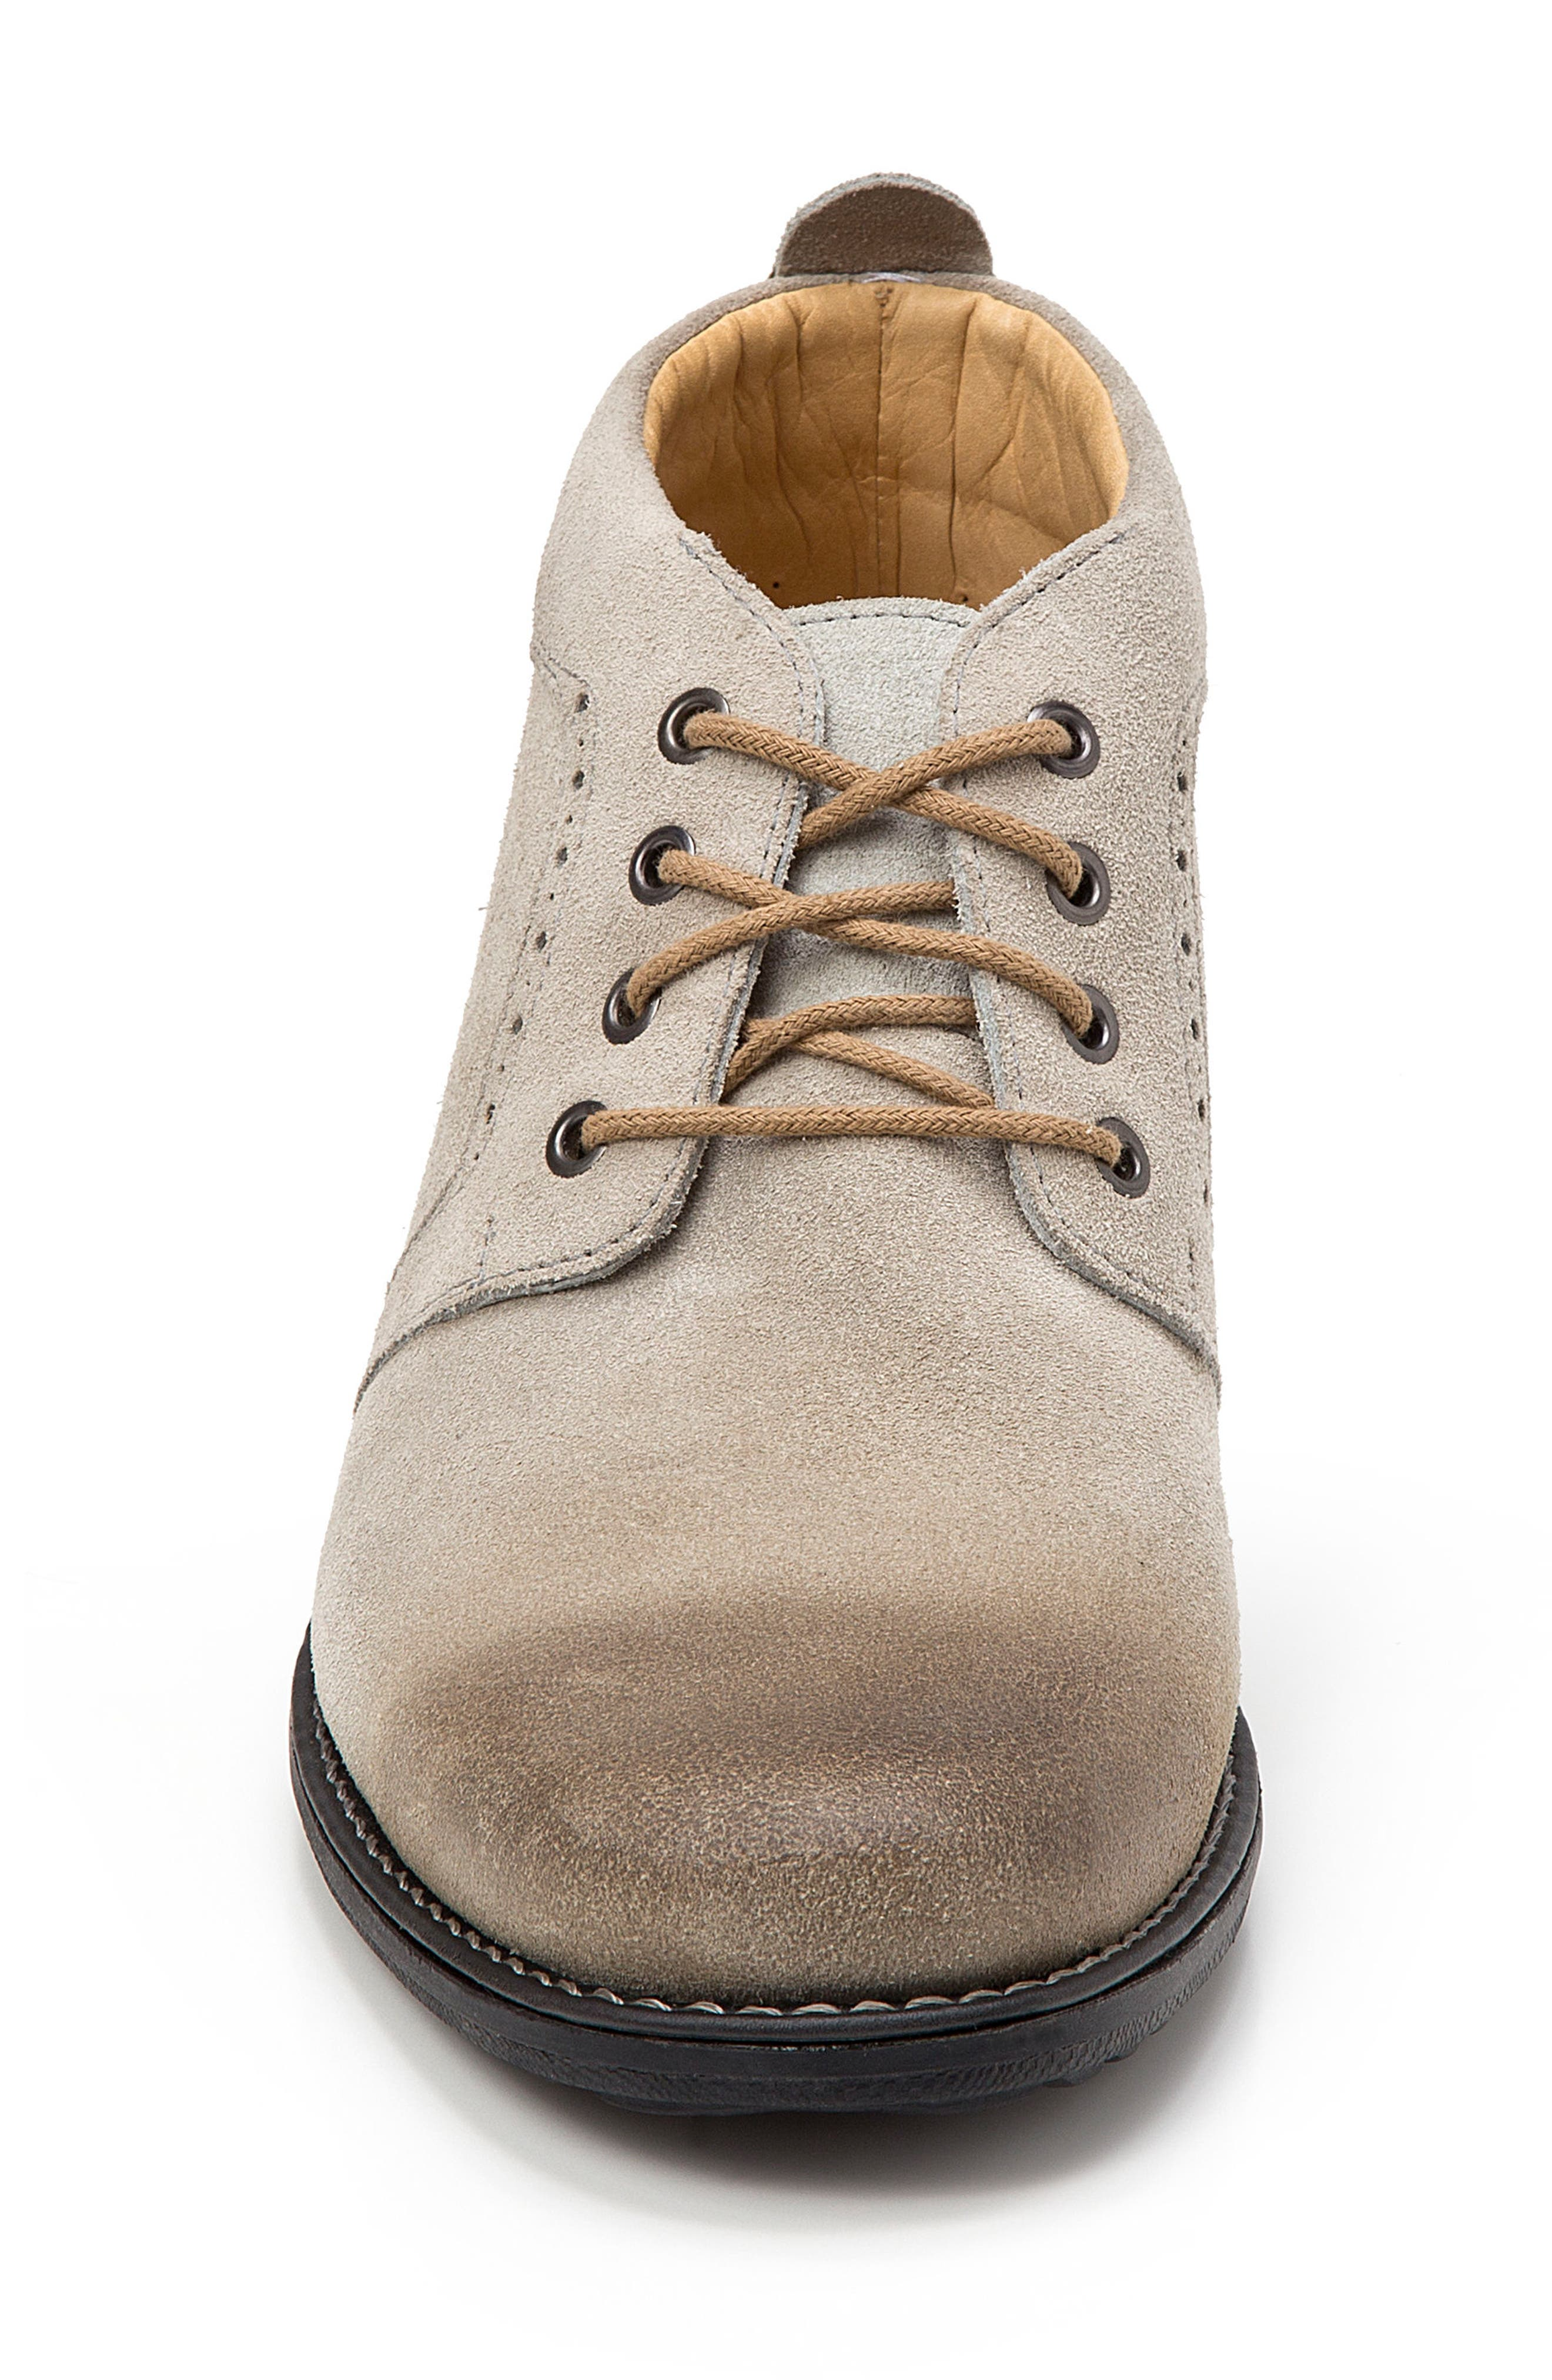 Chukka Boot,                             Alternate thumbnail 4, color,                             GREY